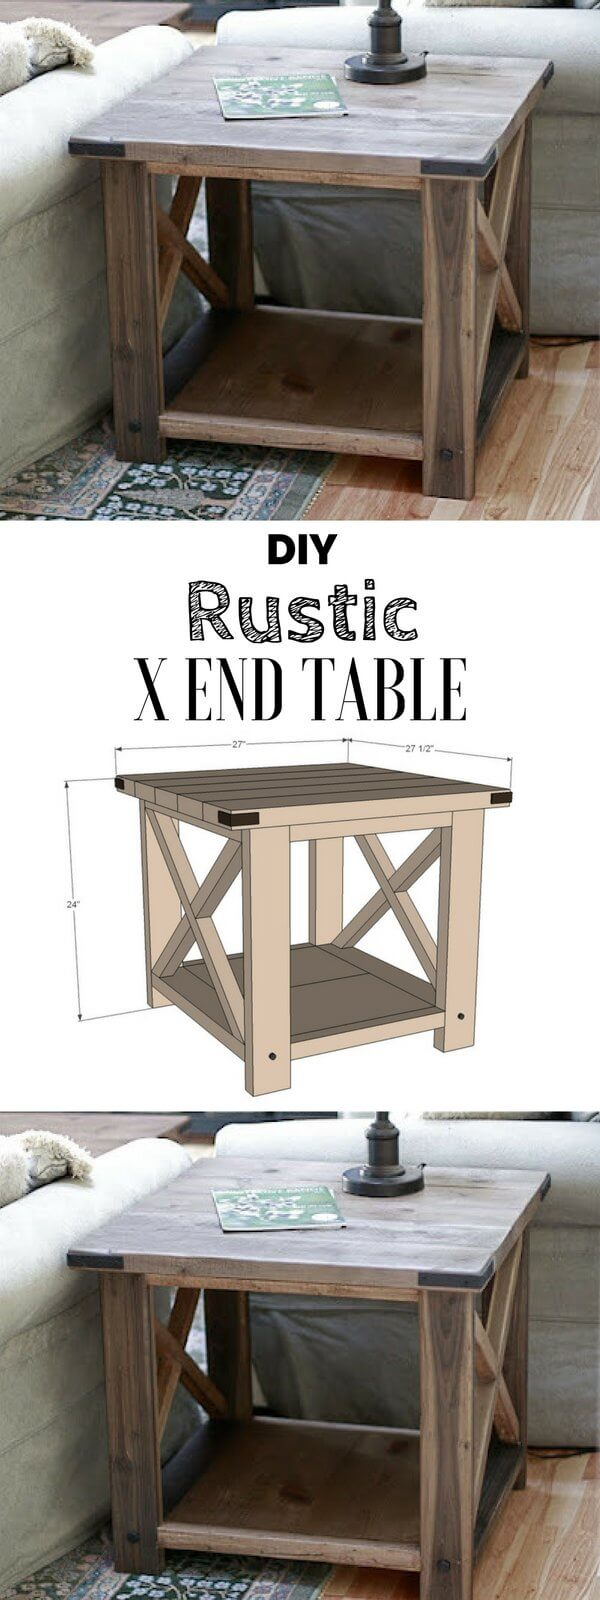 Best 39 Best Diy Rustic Home Decor Ideas And Designs For 2017 This Month